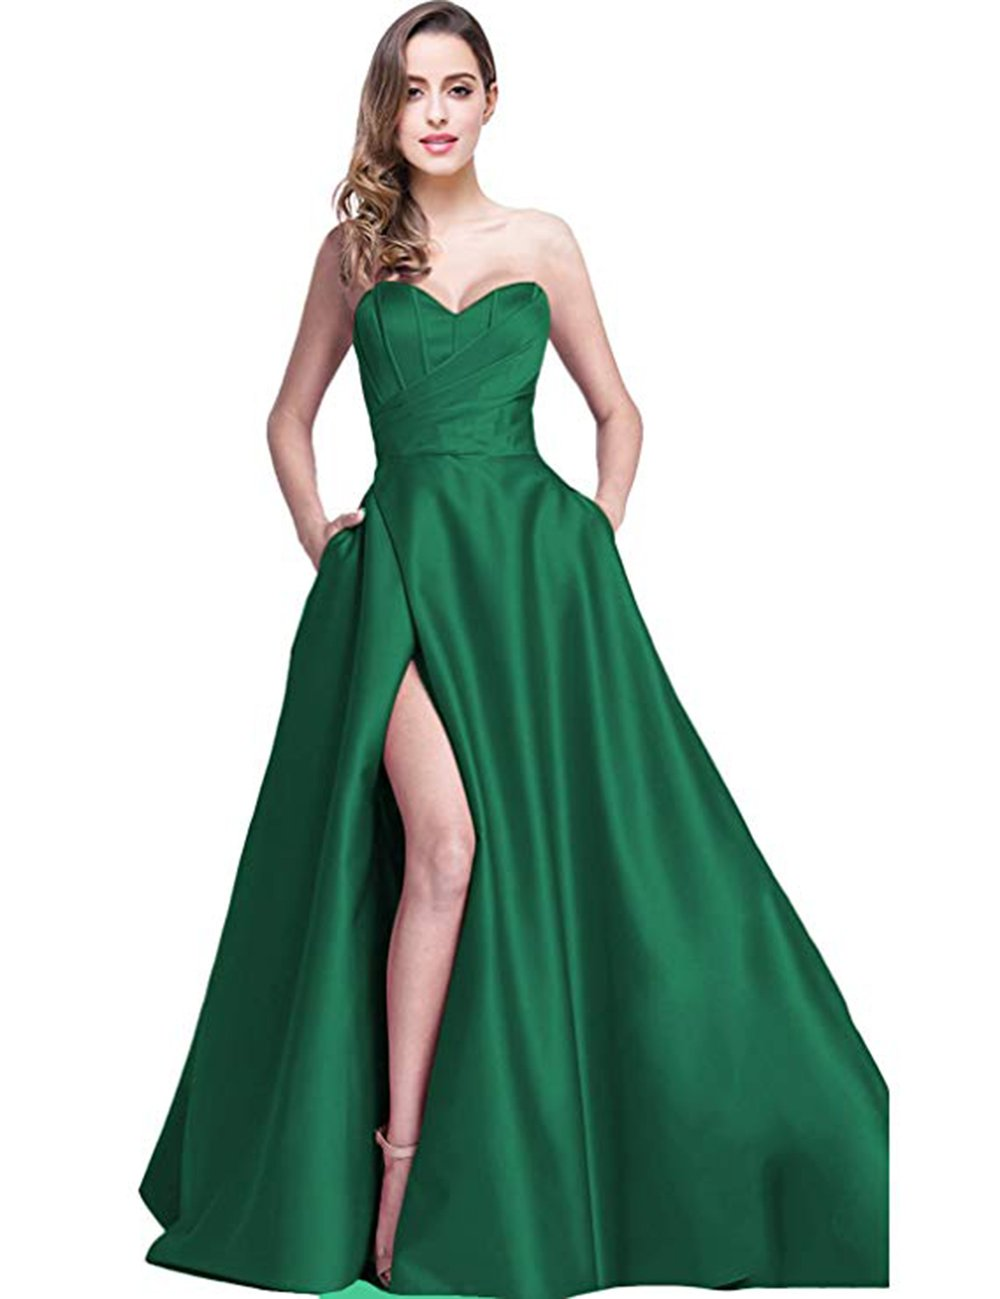 5599d00c801 Ri Yun Women s Sweetheart Prom Dresses Long 2019 High Slit Strapless A-Line  Formal Evening Ball Gowns with Pockets Green